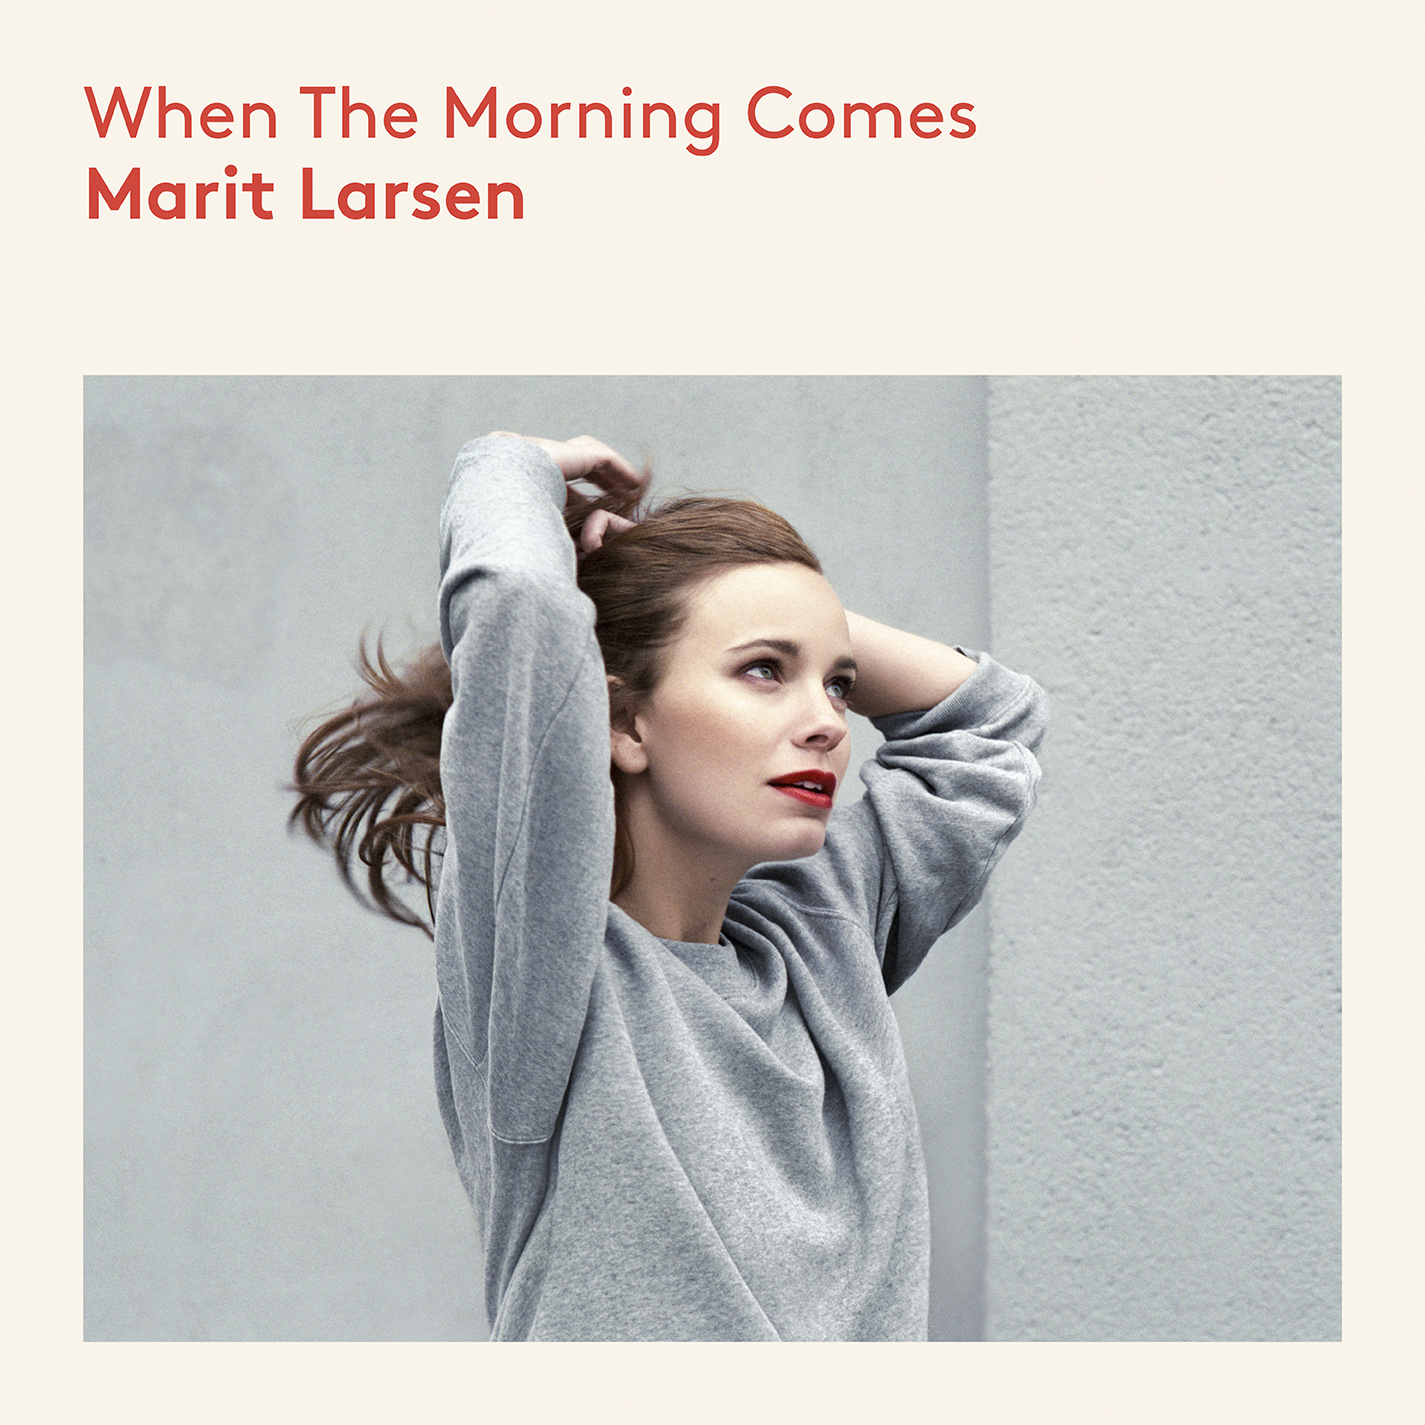 [10's] Marit Larse - I Don't Want To Talk About It (2014) Marit%20Larsen%20-%20When%20the%20Morning%20Comes